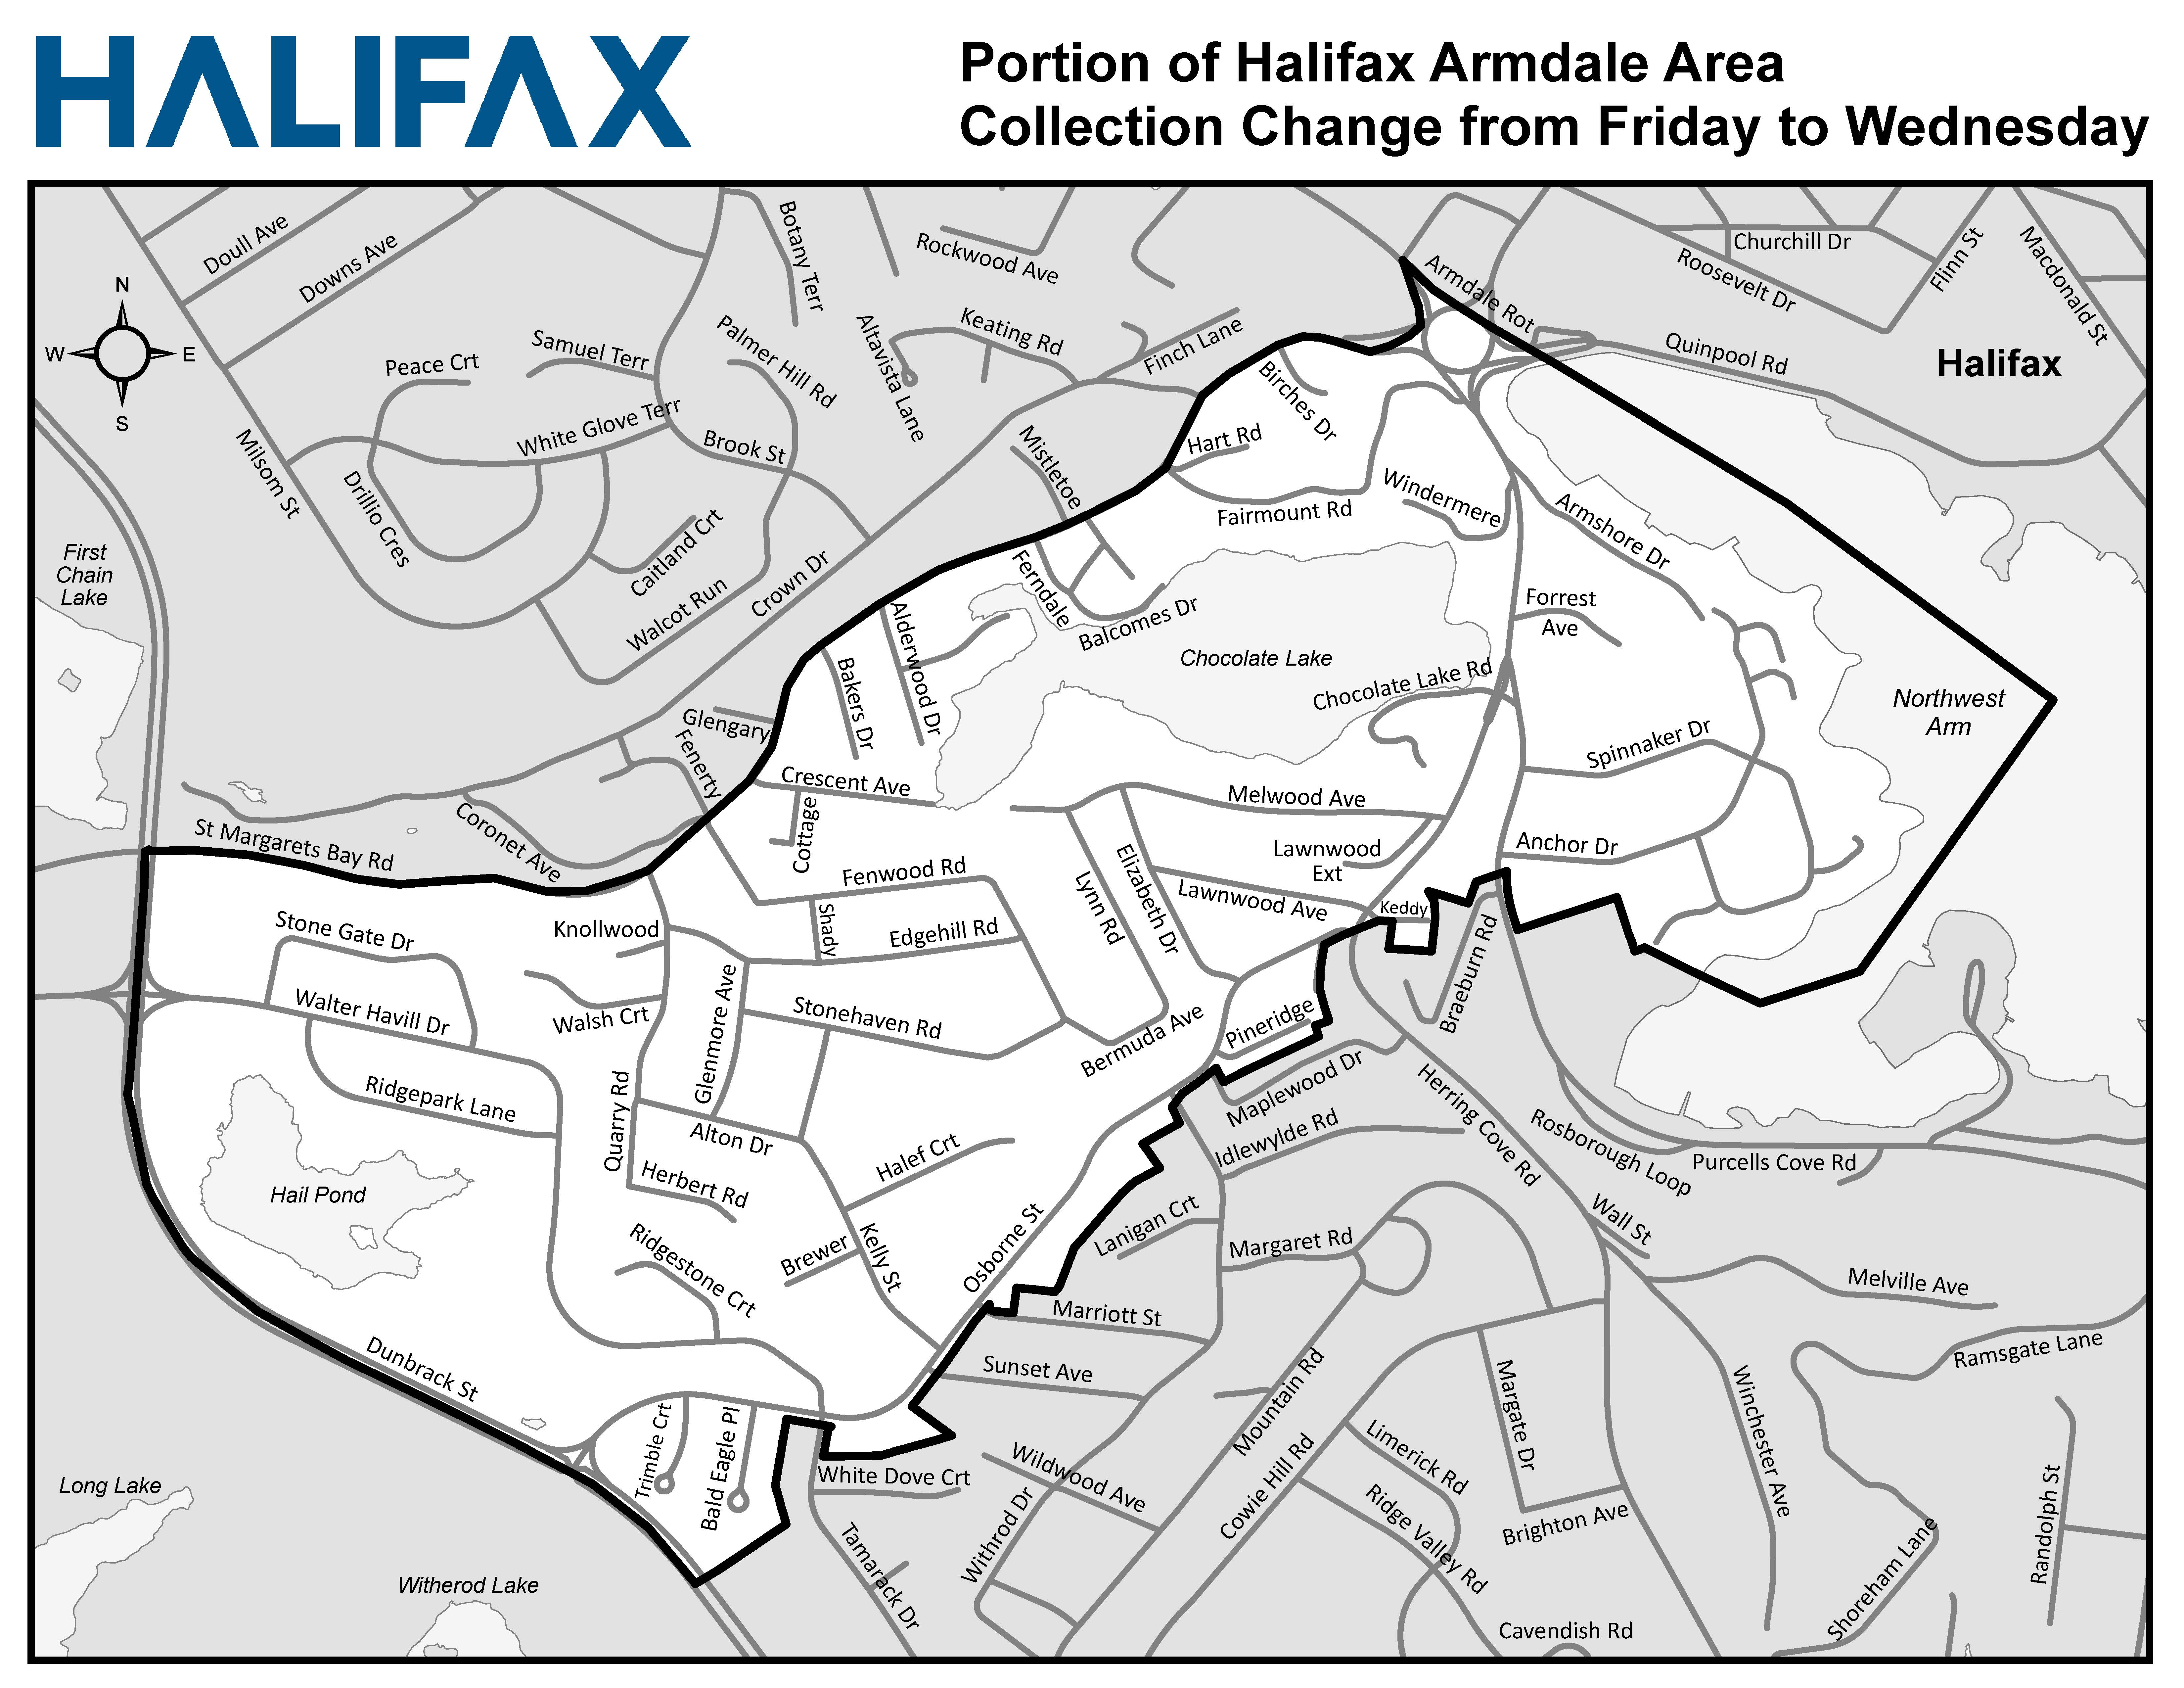 Portion of Halifax Armdale Area Collection Change from Friday to Wednesday (unshaded)